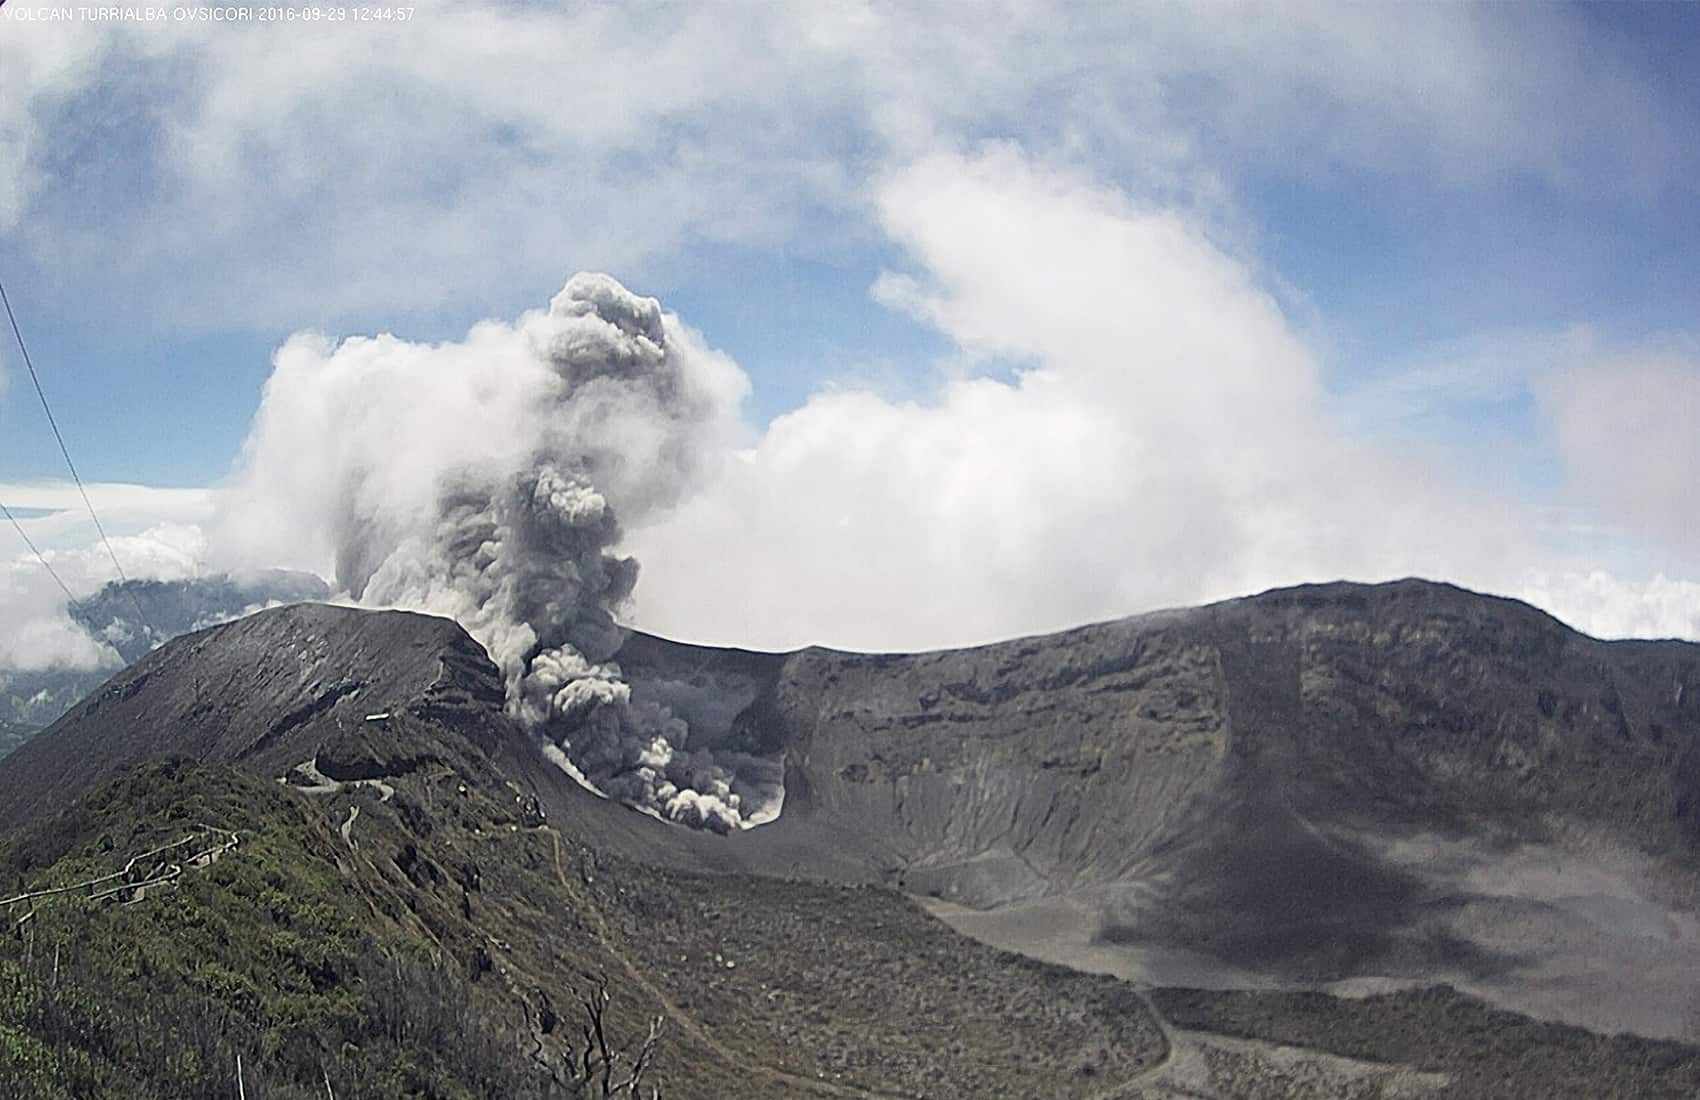 Turrialba Volcano, Sept. 29 2016.